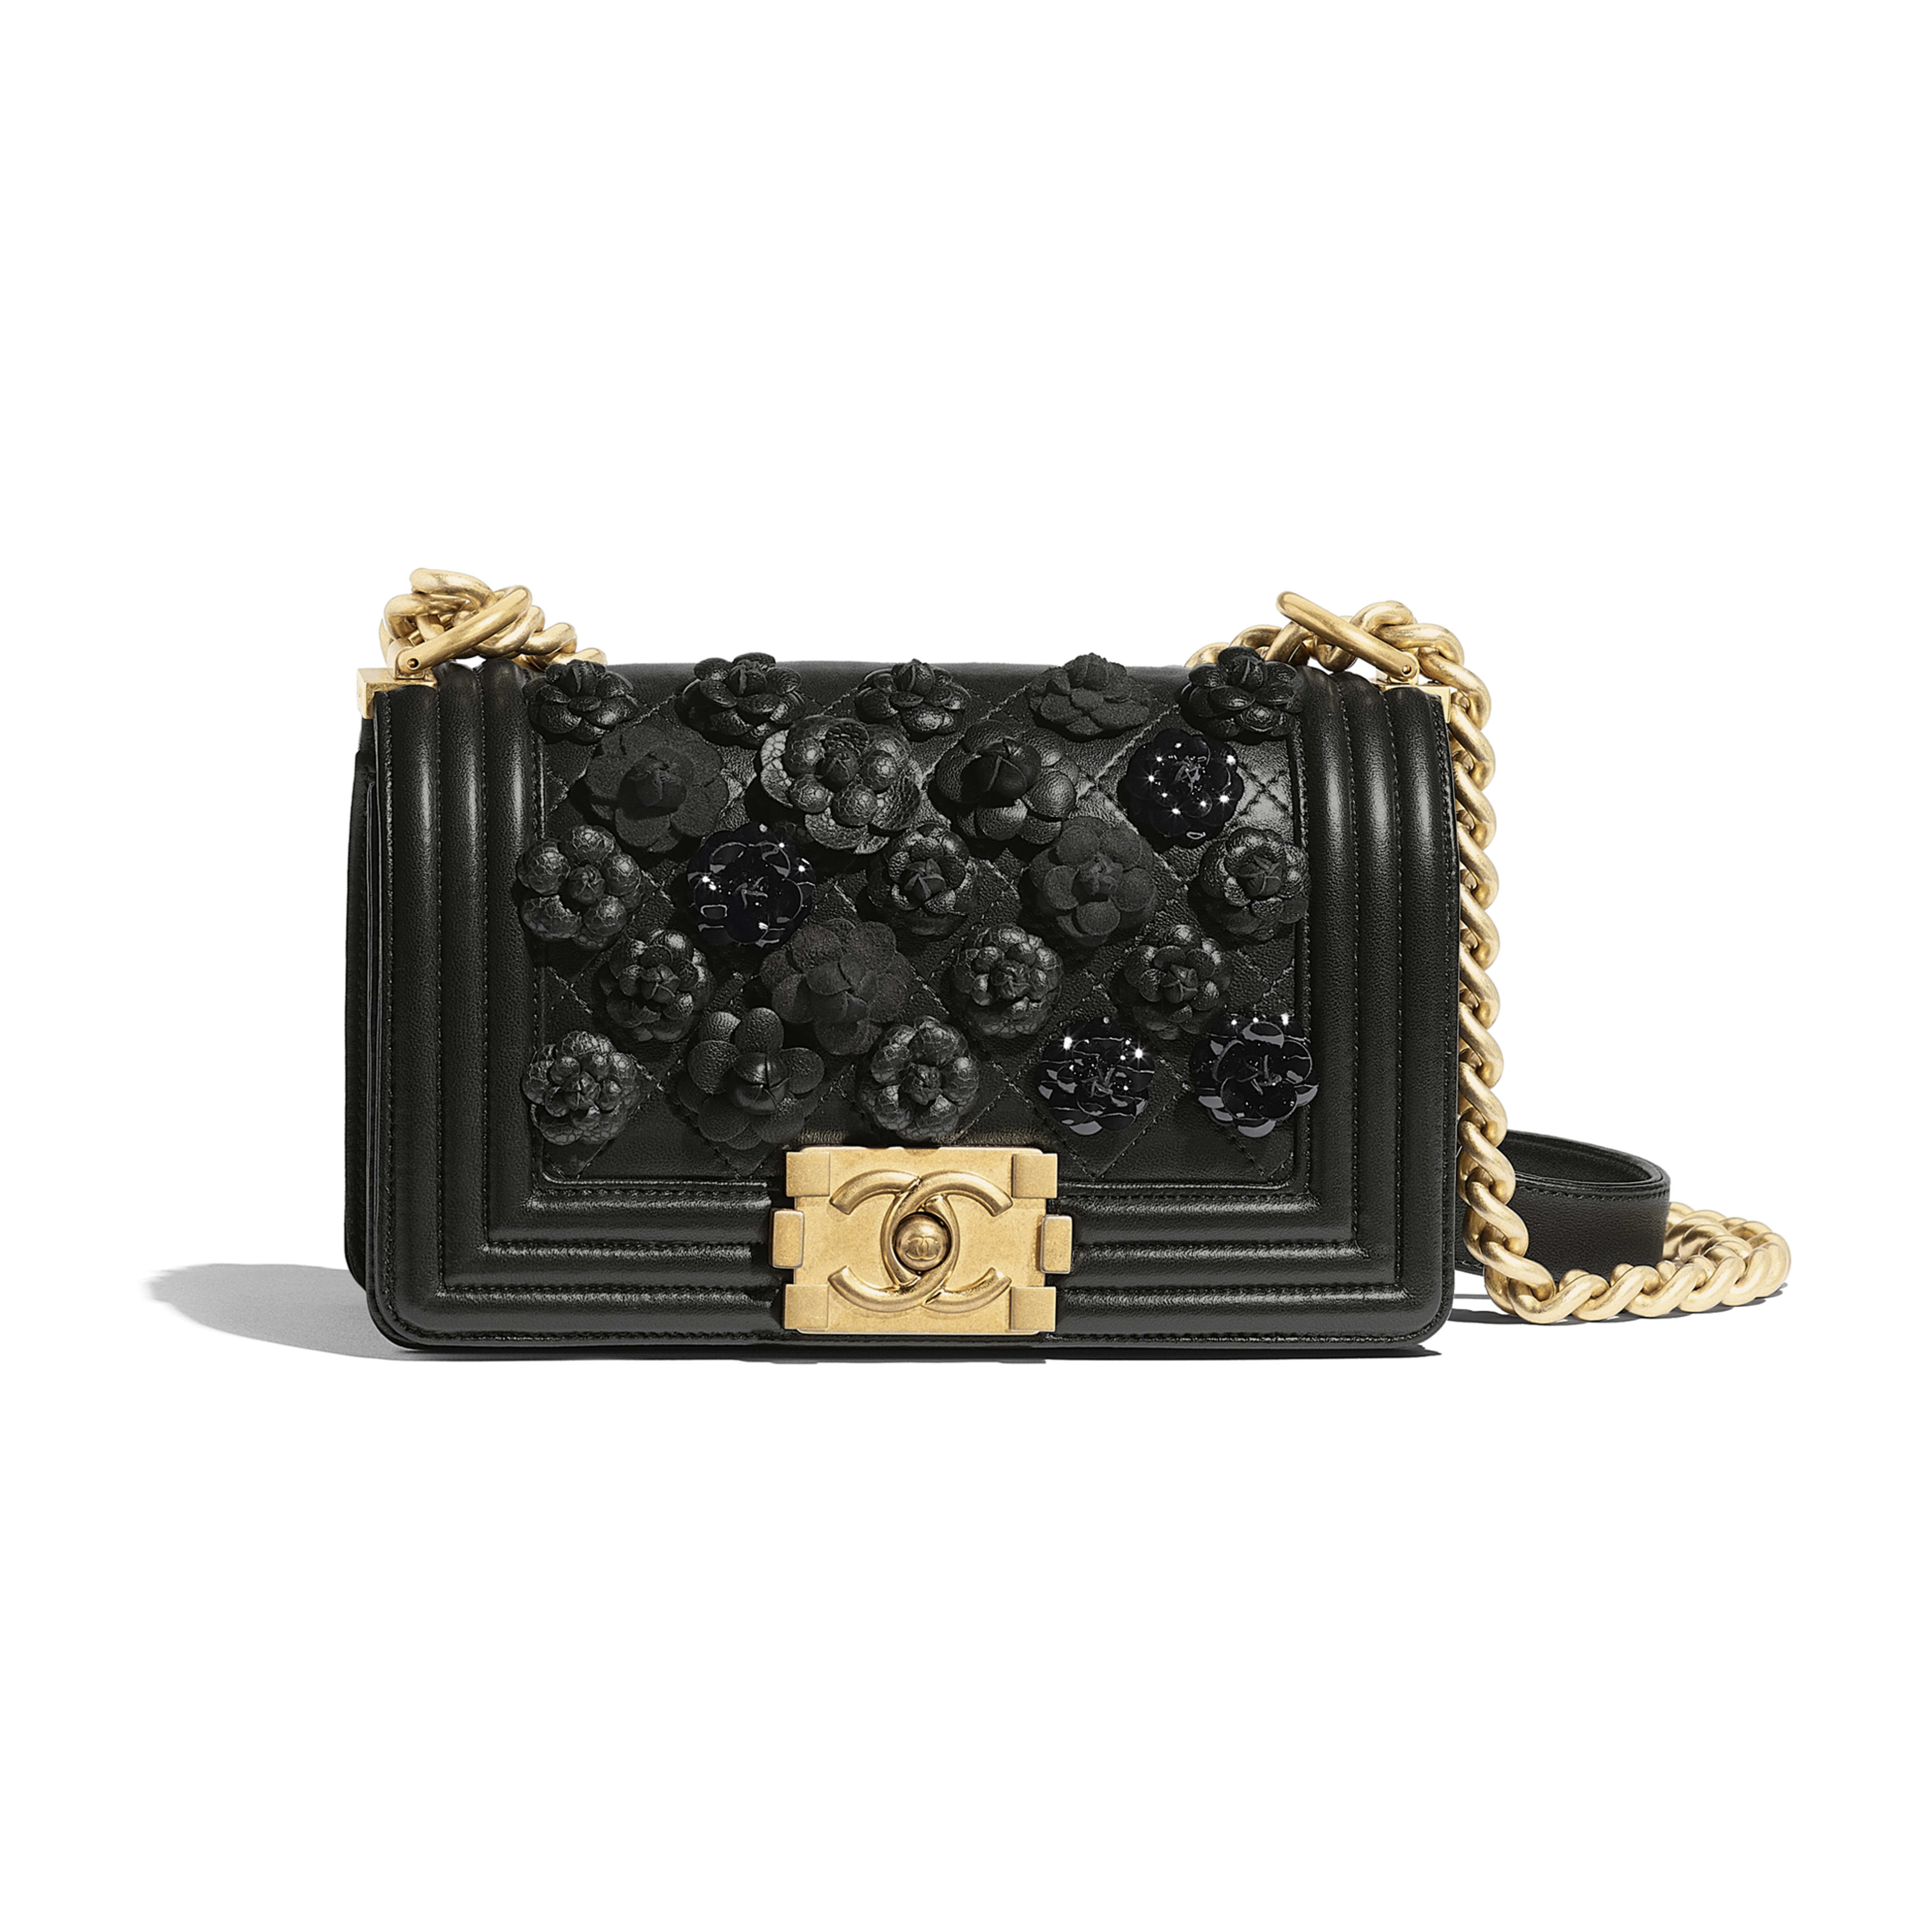 Small BOY CHANEL Handbag - Black - Embroidered Lambskin & Gold-Tone Metal - Default view - see full sized version